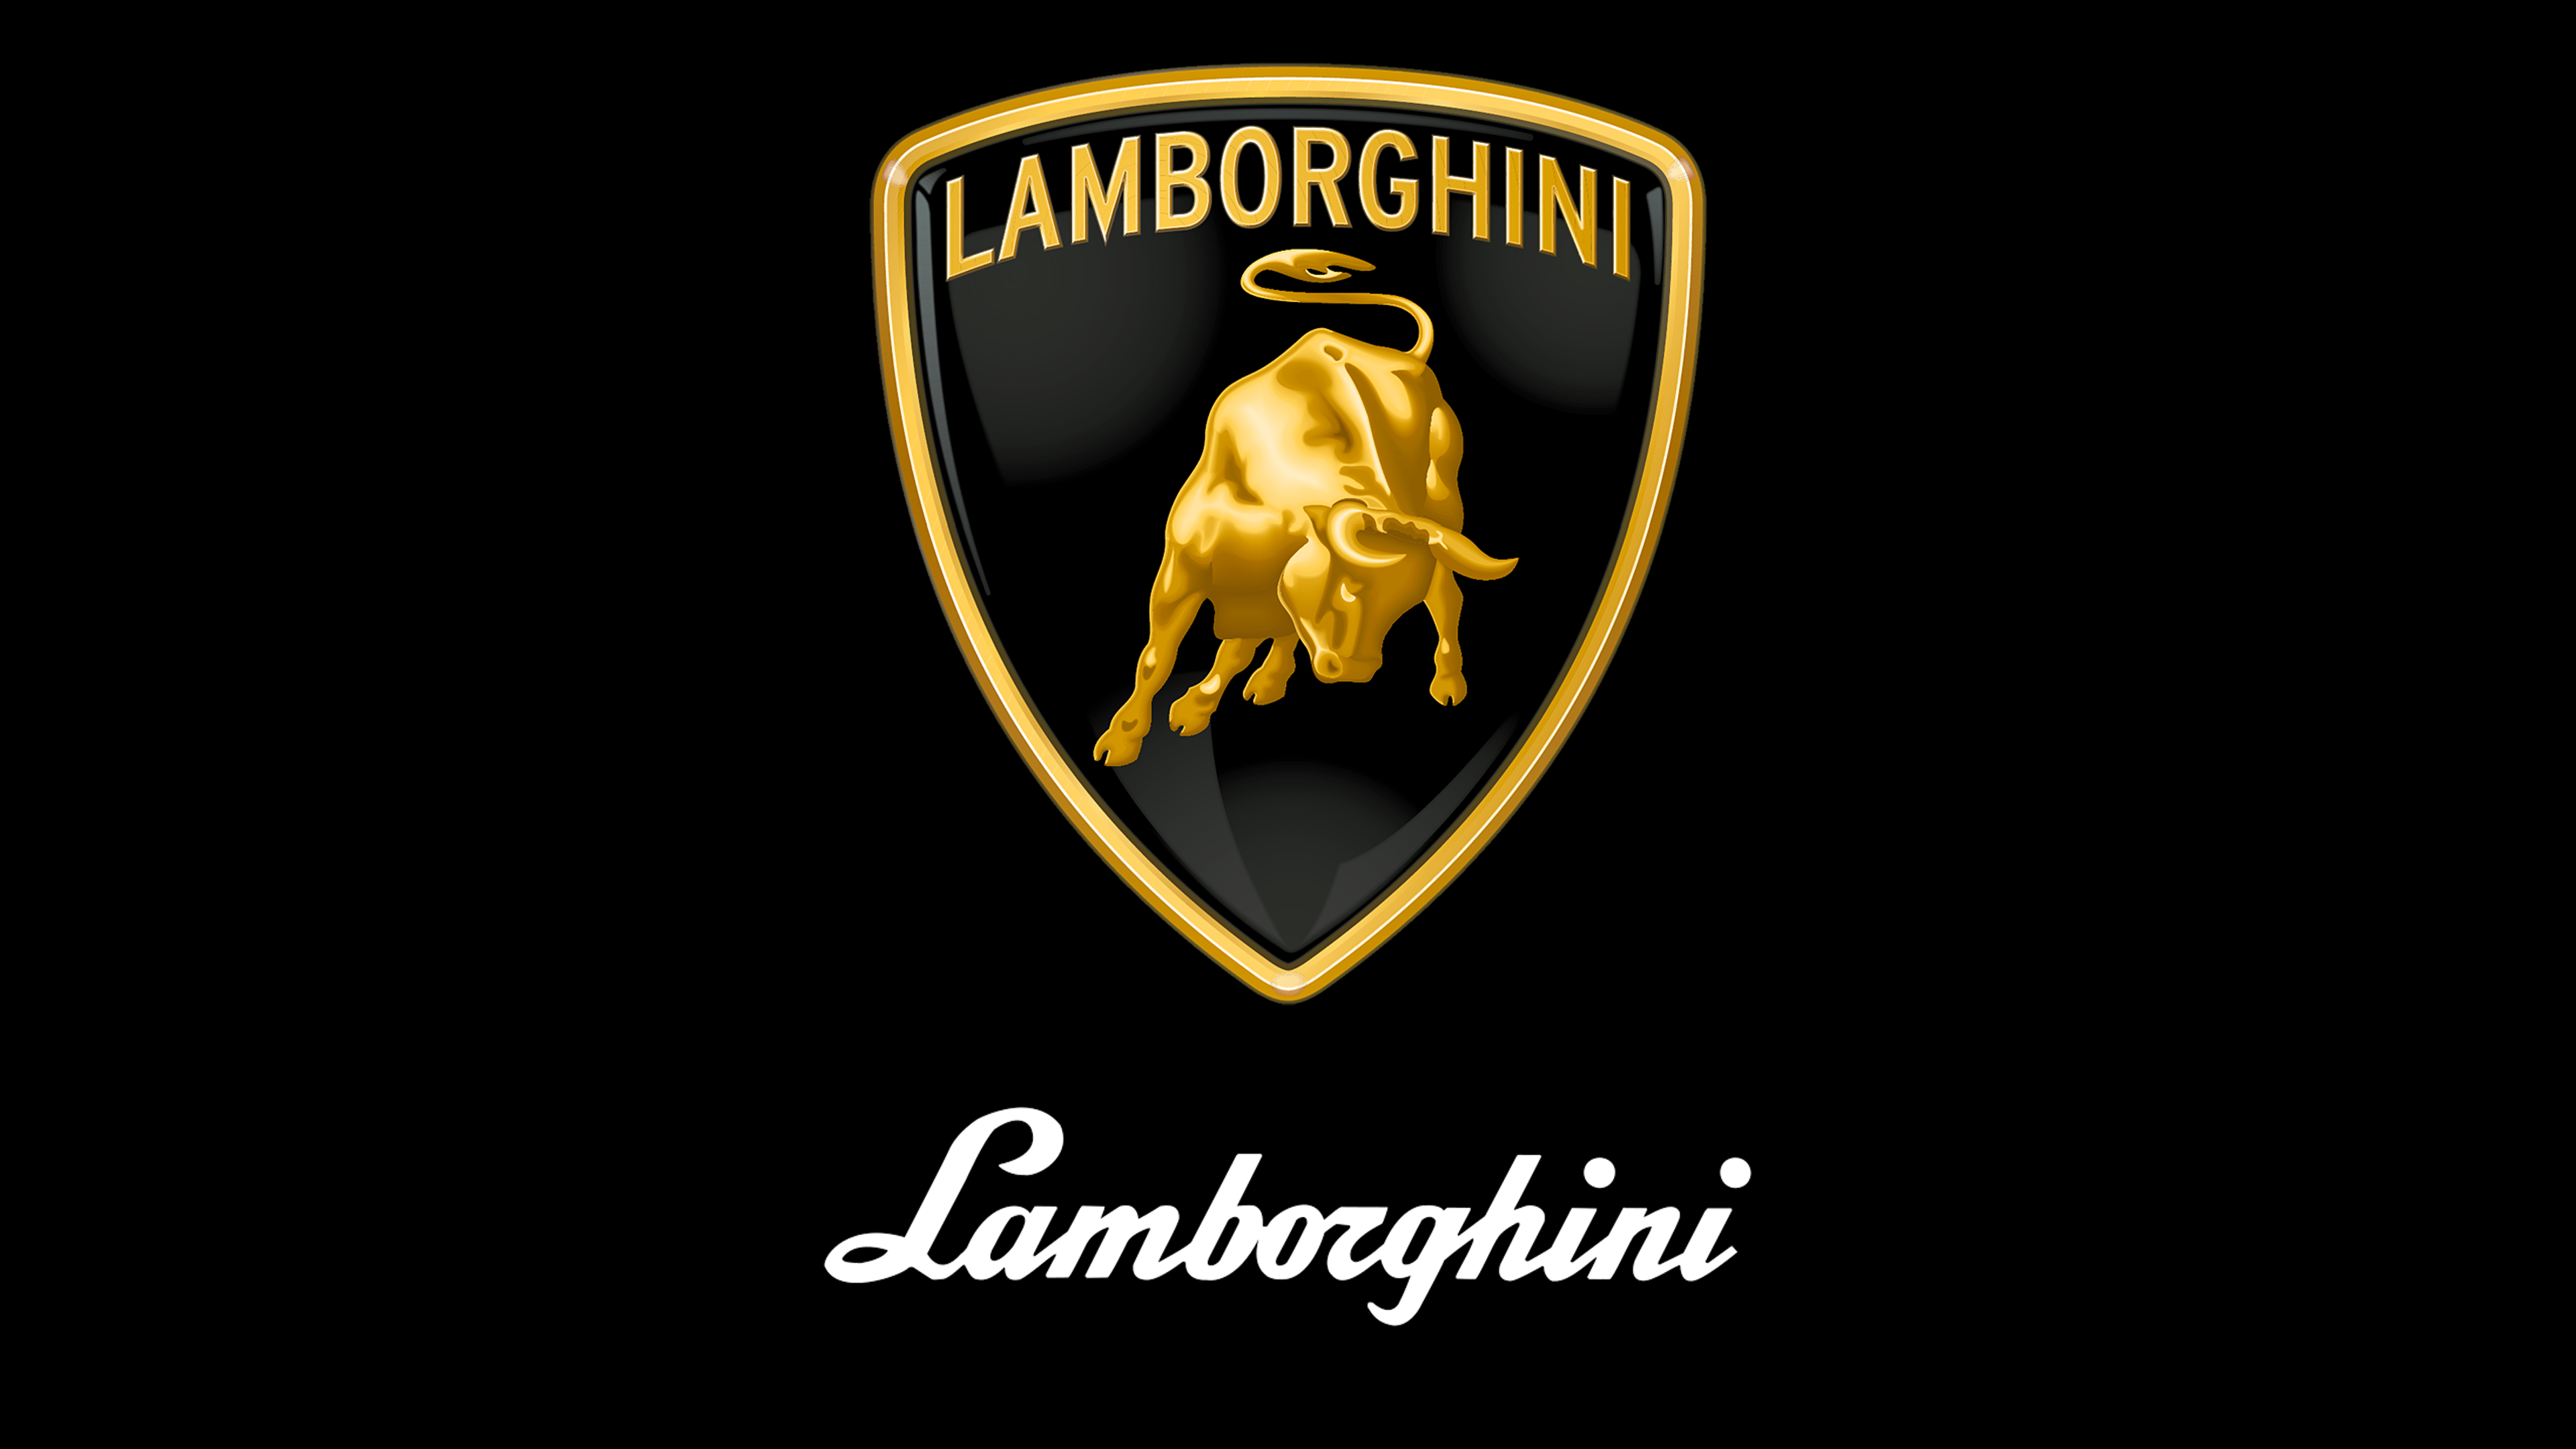 Lamborghini Logo Wallpaper 4k Ultra Hd Wallpaper Background Image